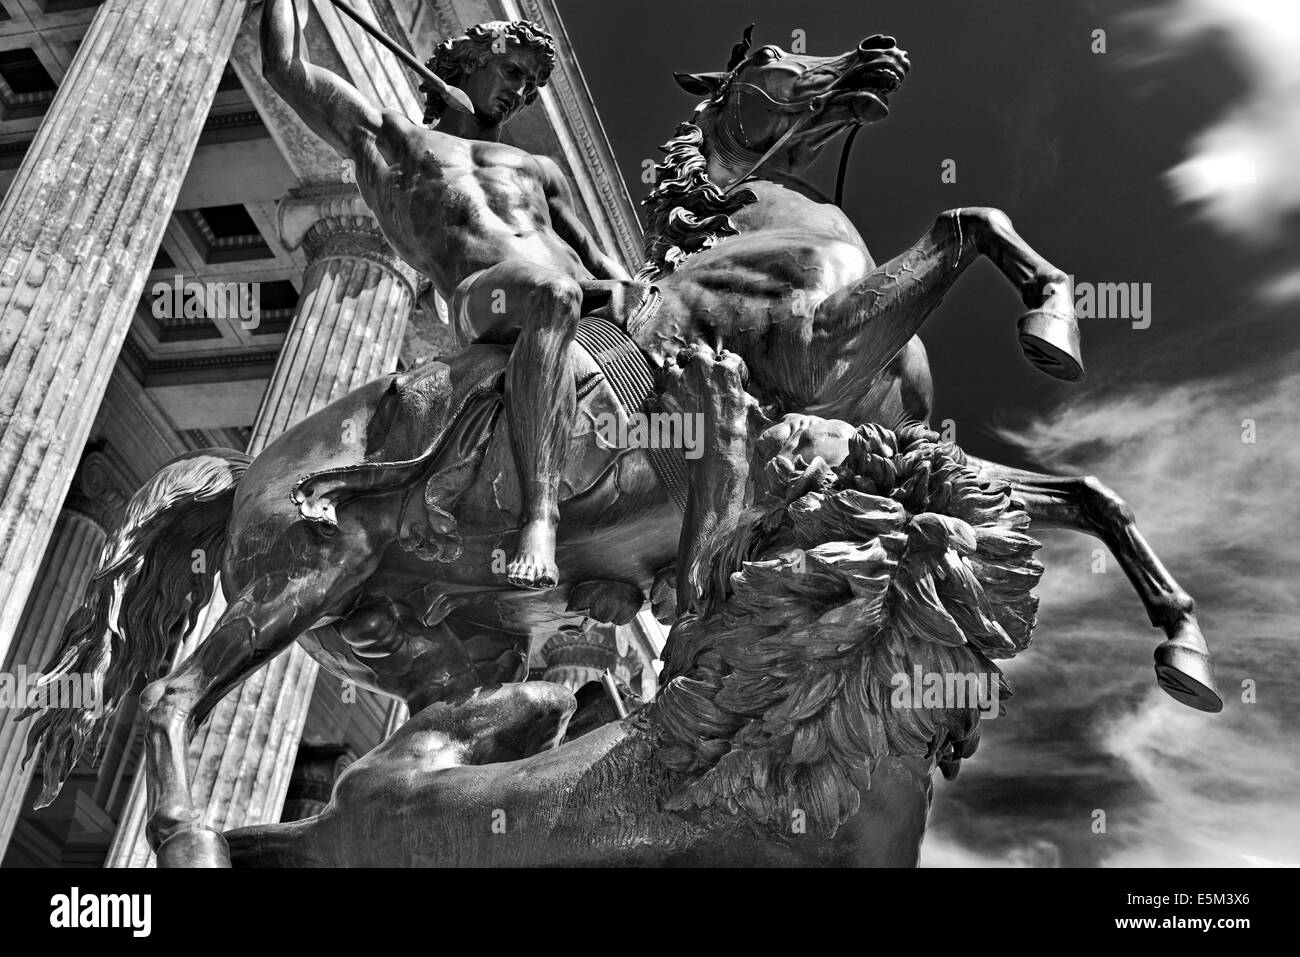 Germany, Berlin: Side view of a equestrian statue of a Lion fighter in front of the Altes Museum - Stock Image